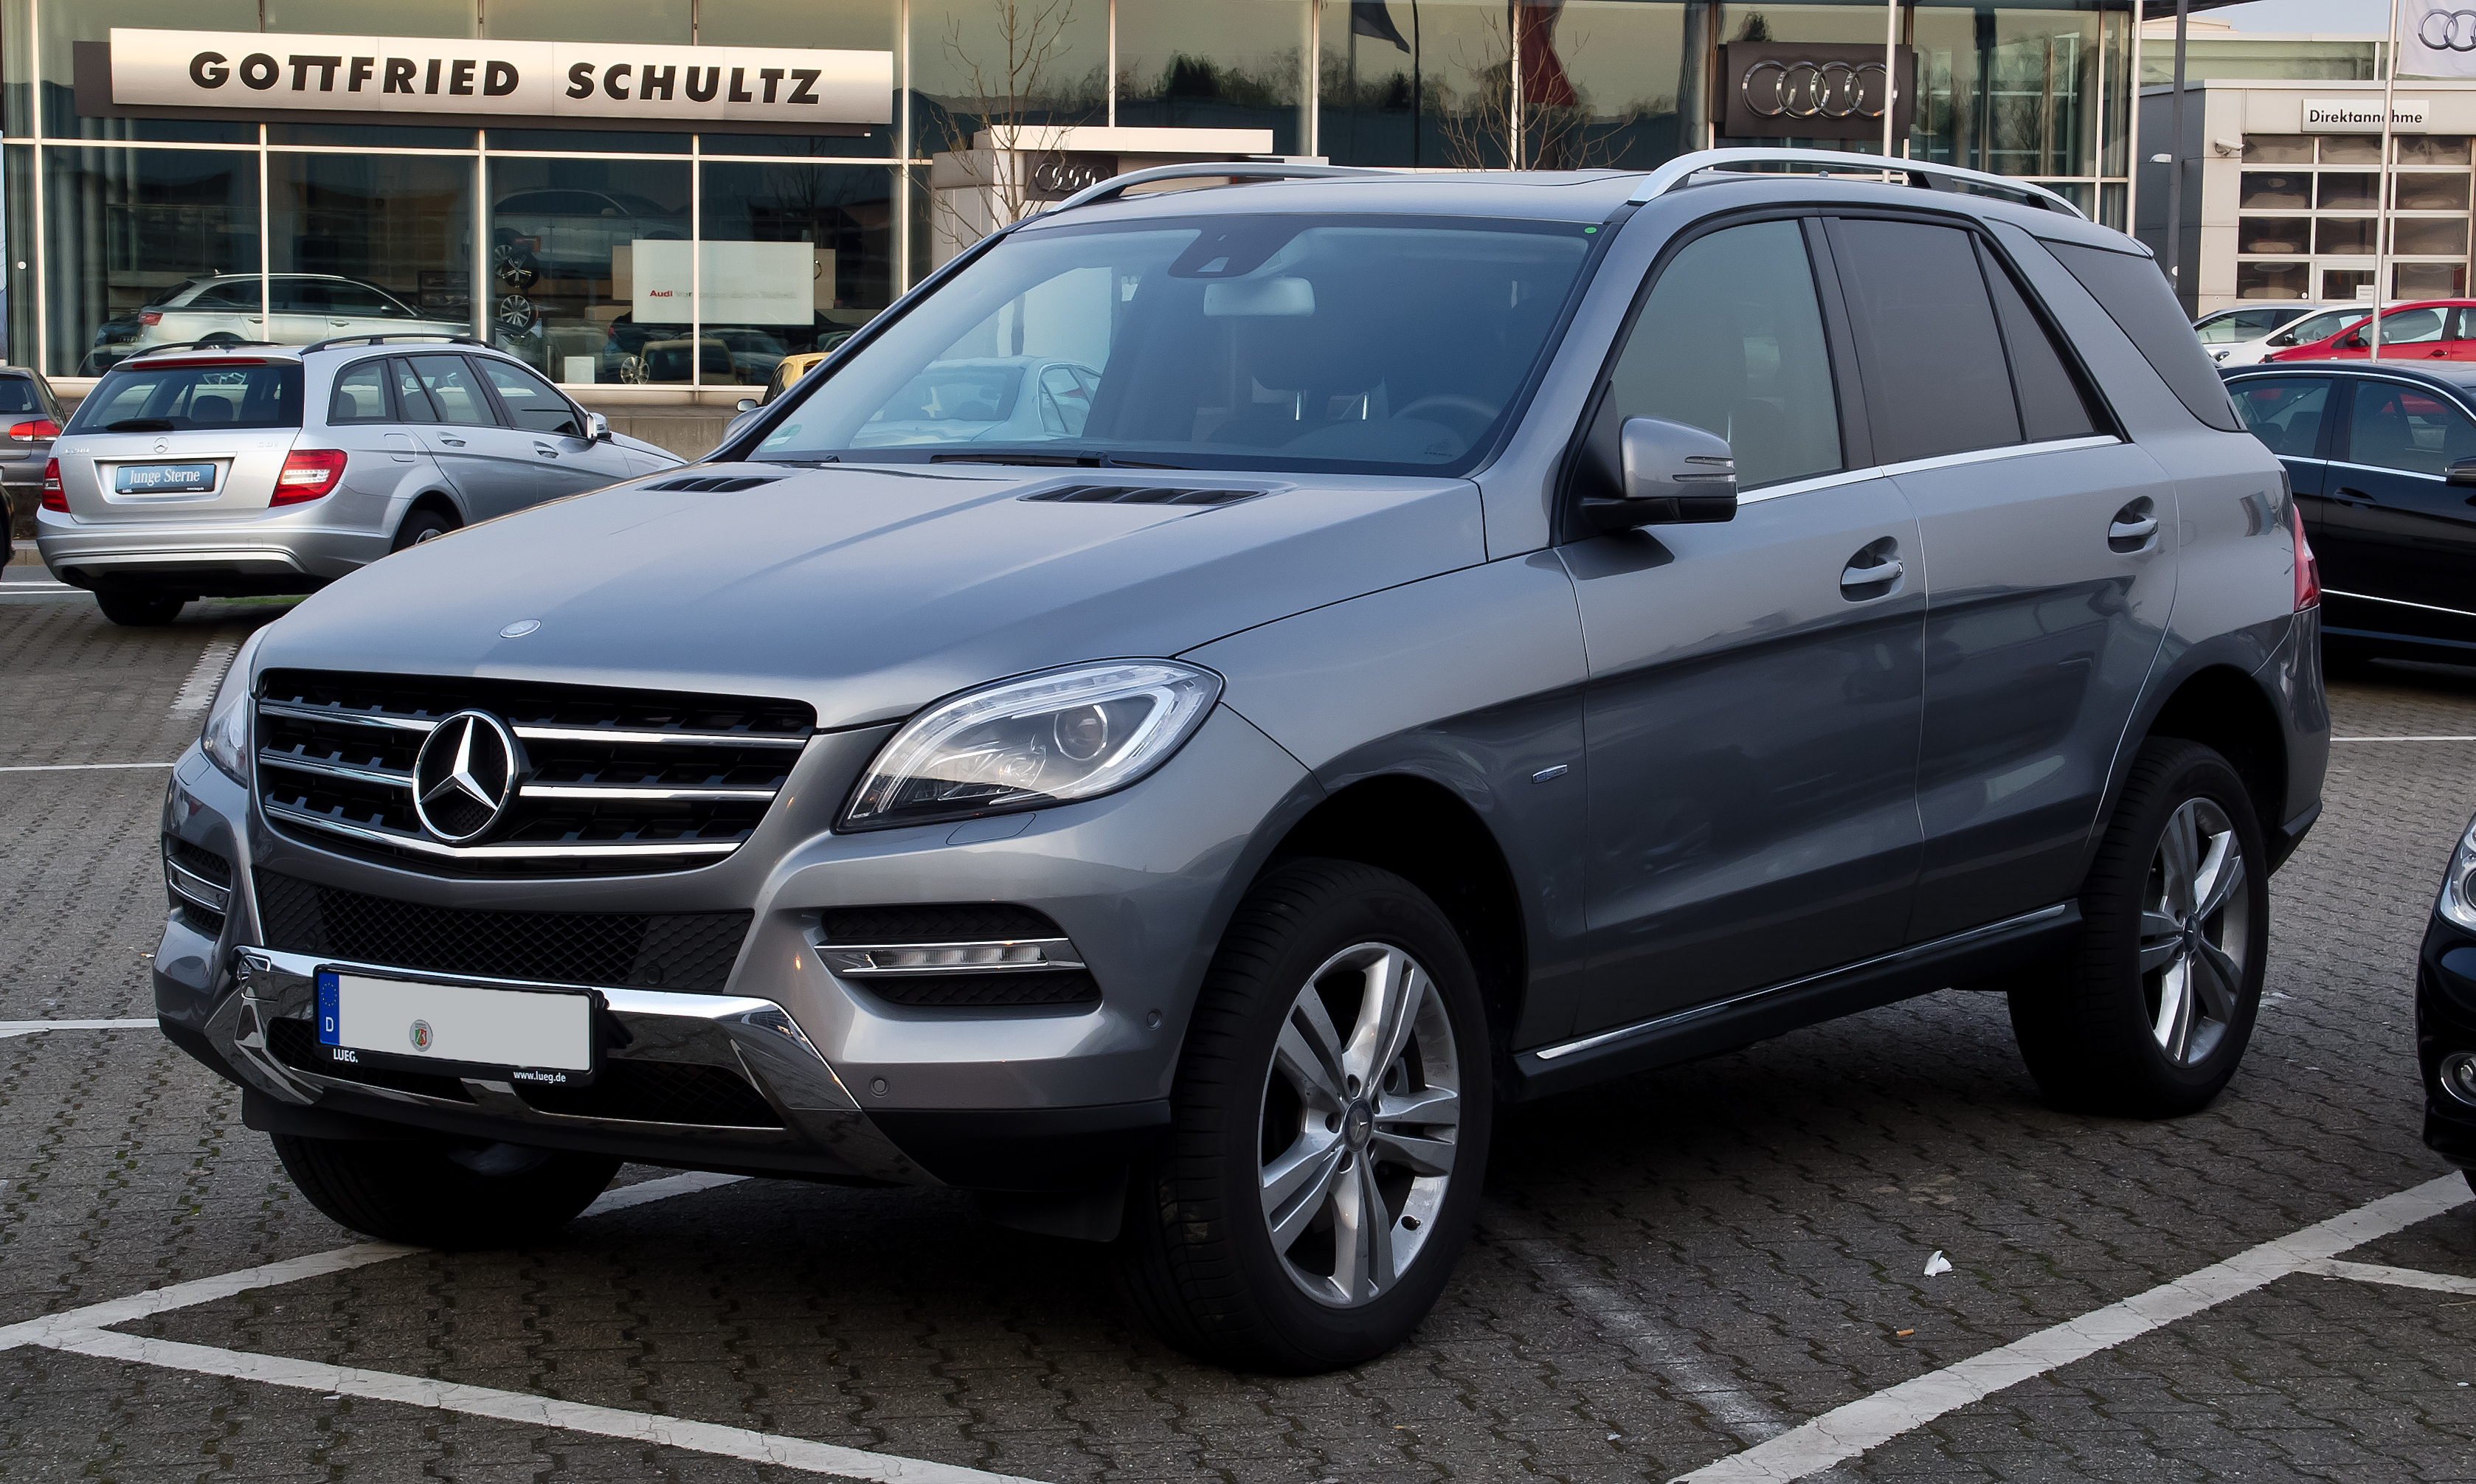 Mercedes Benz_ML_250_BlueTEC_4MATIC_%28W_166%29_%E2%80%93_Frontansicht%2C_24._M%C3%A4rz_2012%2C_Velbert file mercedes benz ml 250 bluetec 4matic (w 166) frontansicht  at readyjetset.co